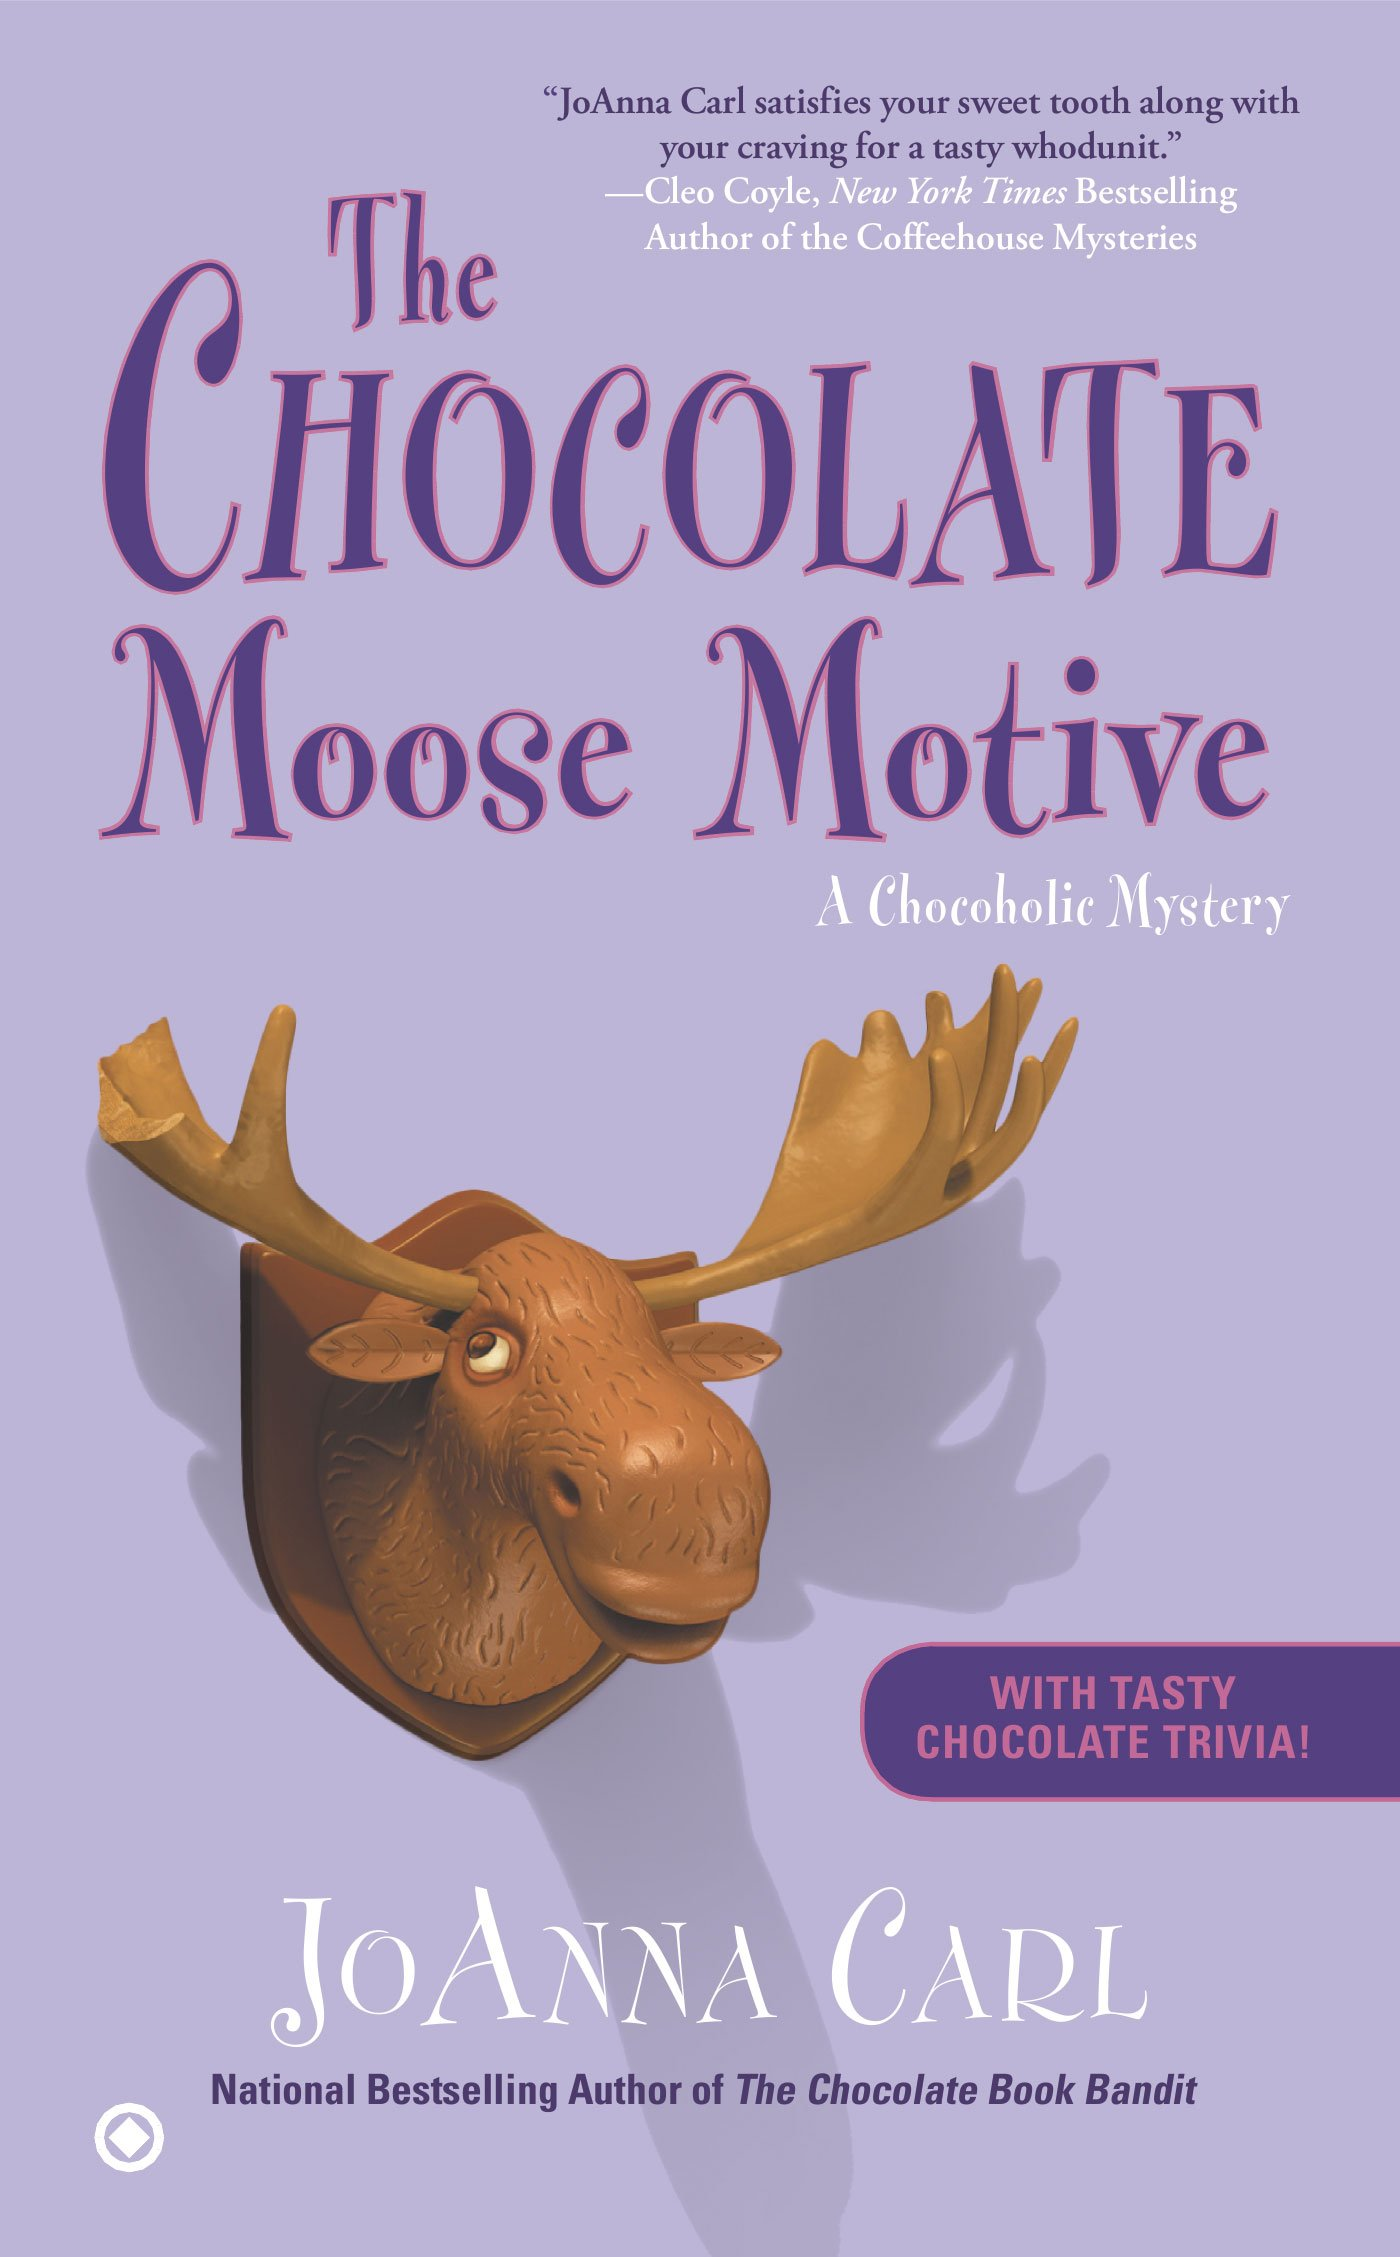 The Chocolate Moose Motive: A Chocoholic Mystery: JoAnna Carl ...